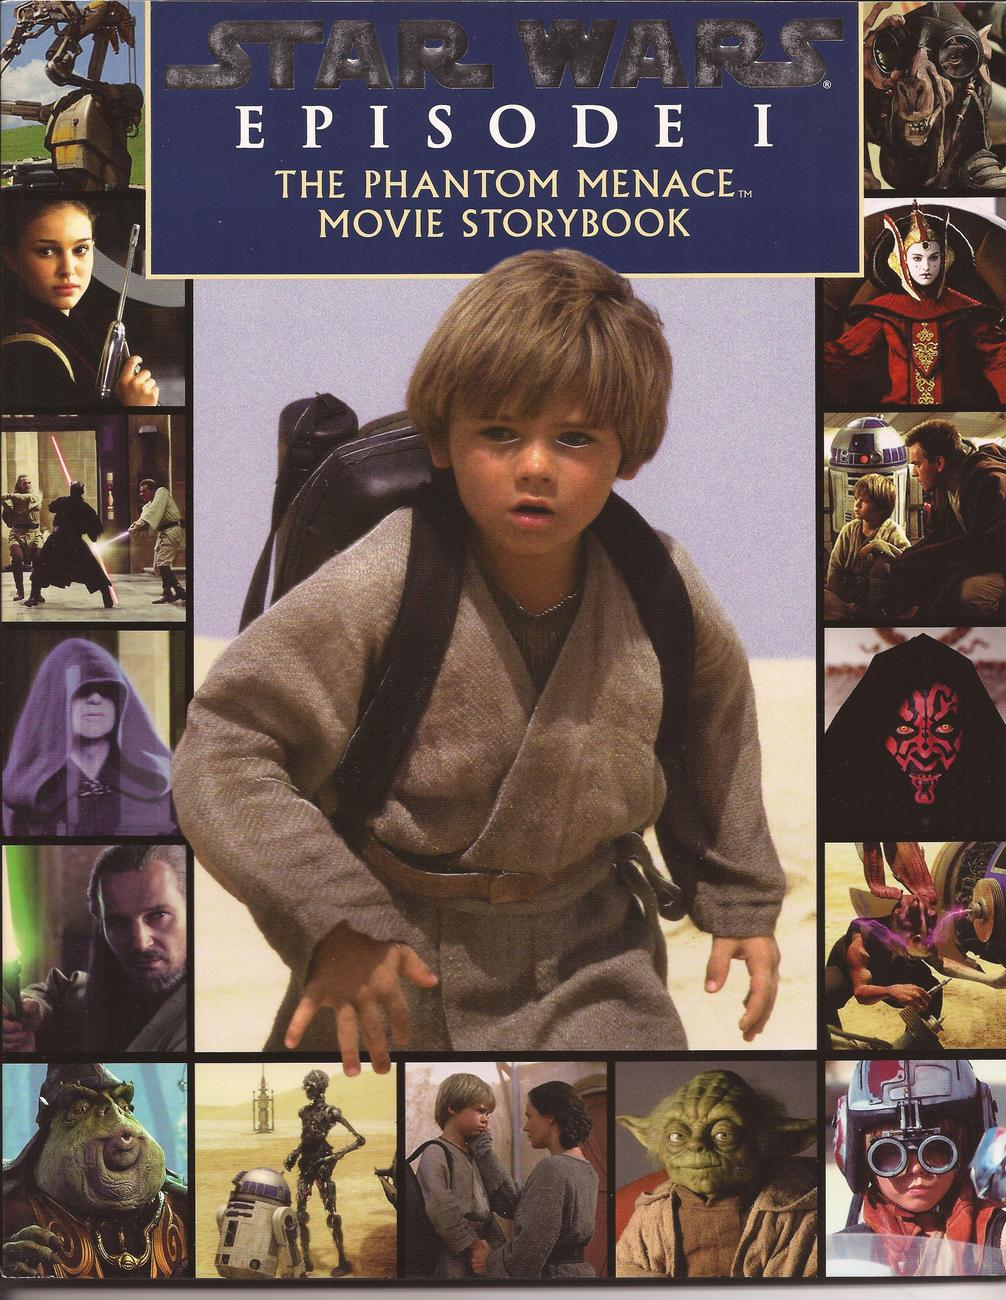 Primary image for Star Wars Episode 1 The Phantom Menace Movie Storybook Color Photos Storyline